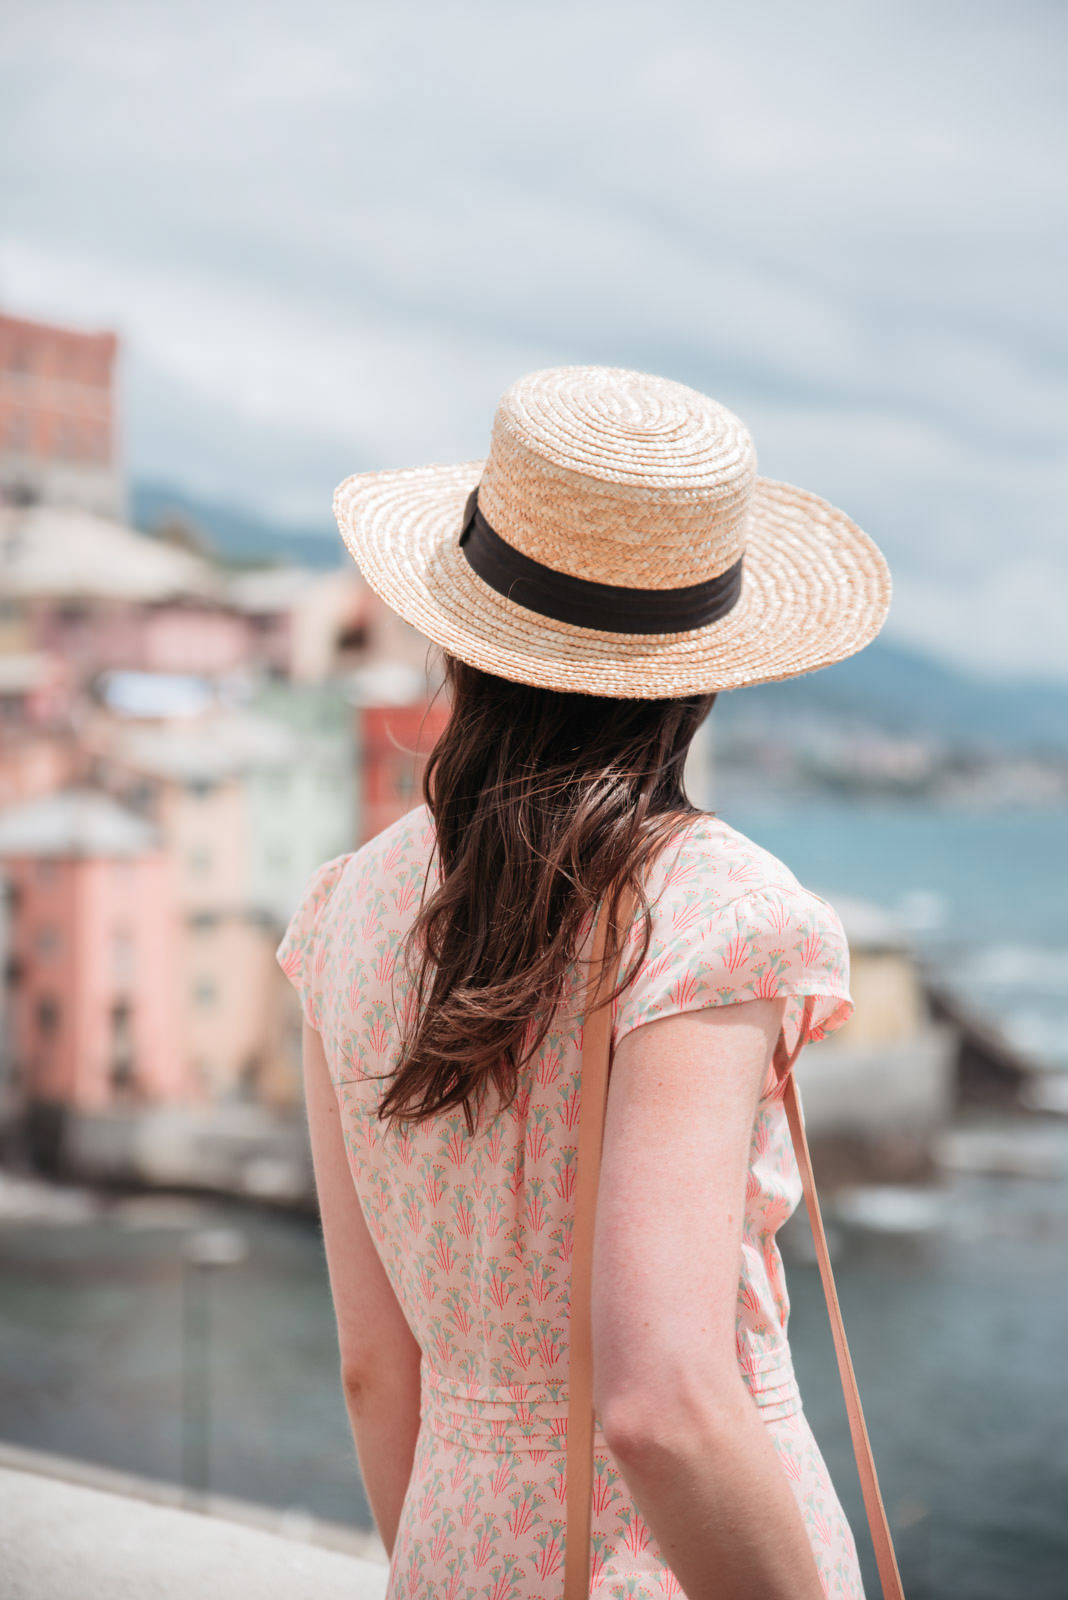 Blog-Mode-And-The-City-Lifestyle-Italie-Bocadasse-Camogli-Sestri-Levante-9